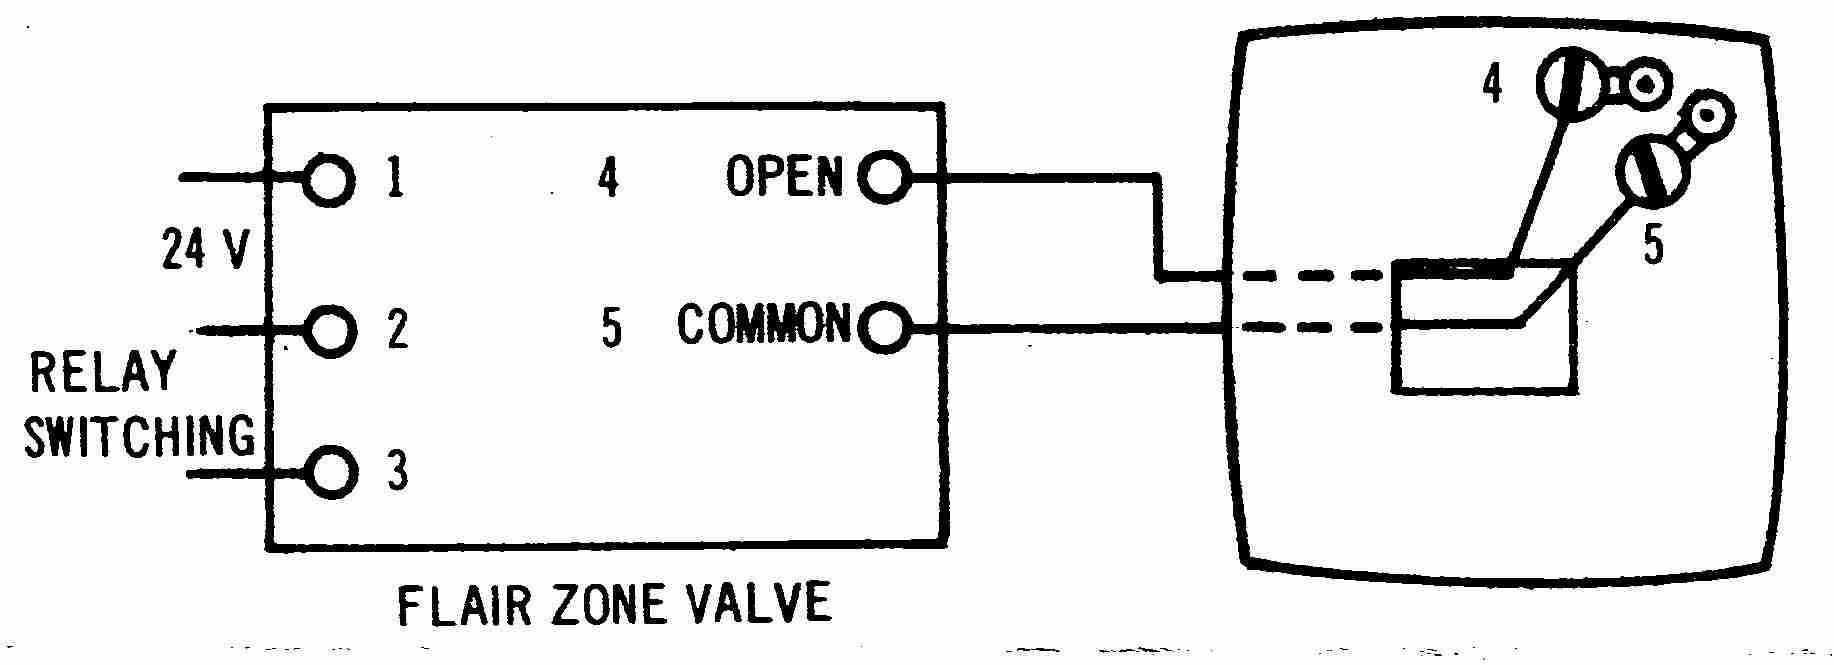 Flair2w_001_DJFc1 room thermostat wiring diagrams for hvac systems